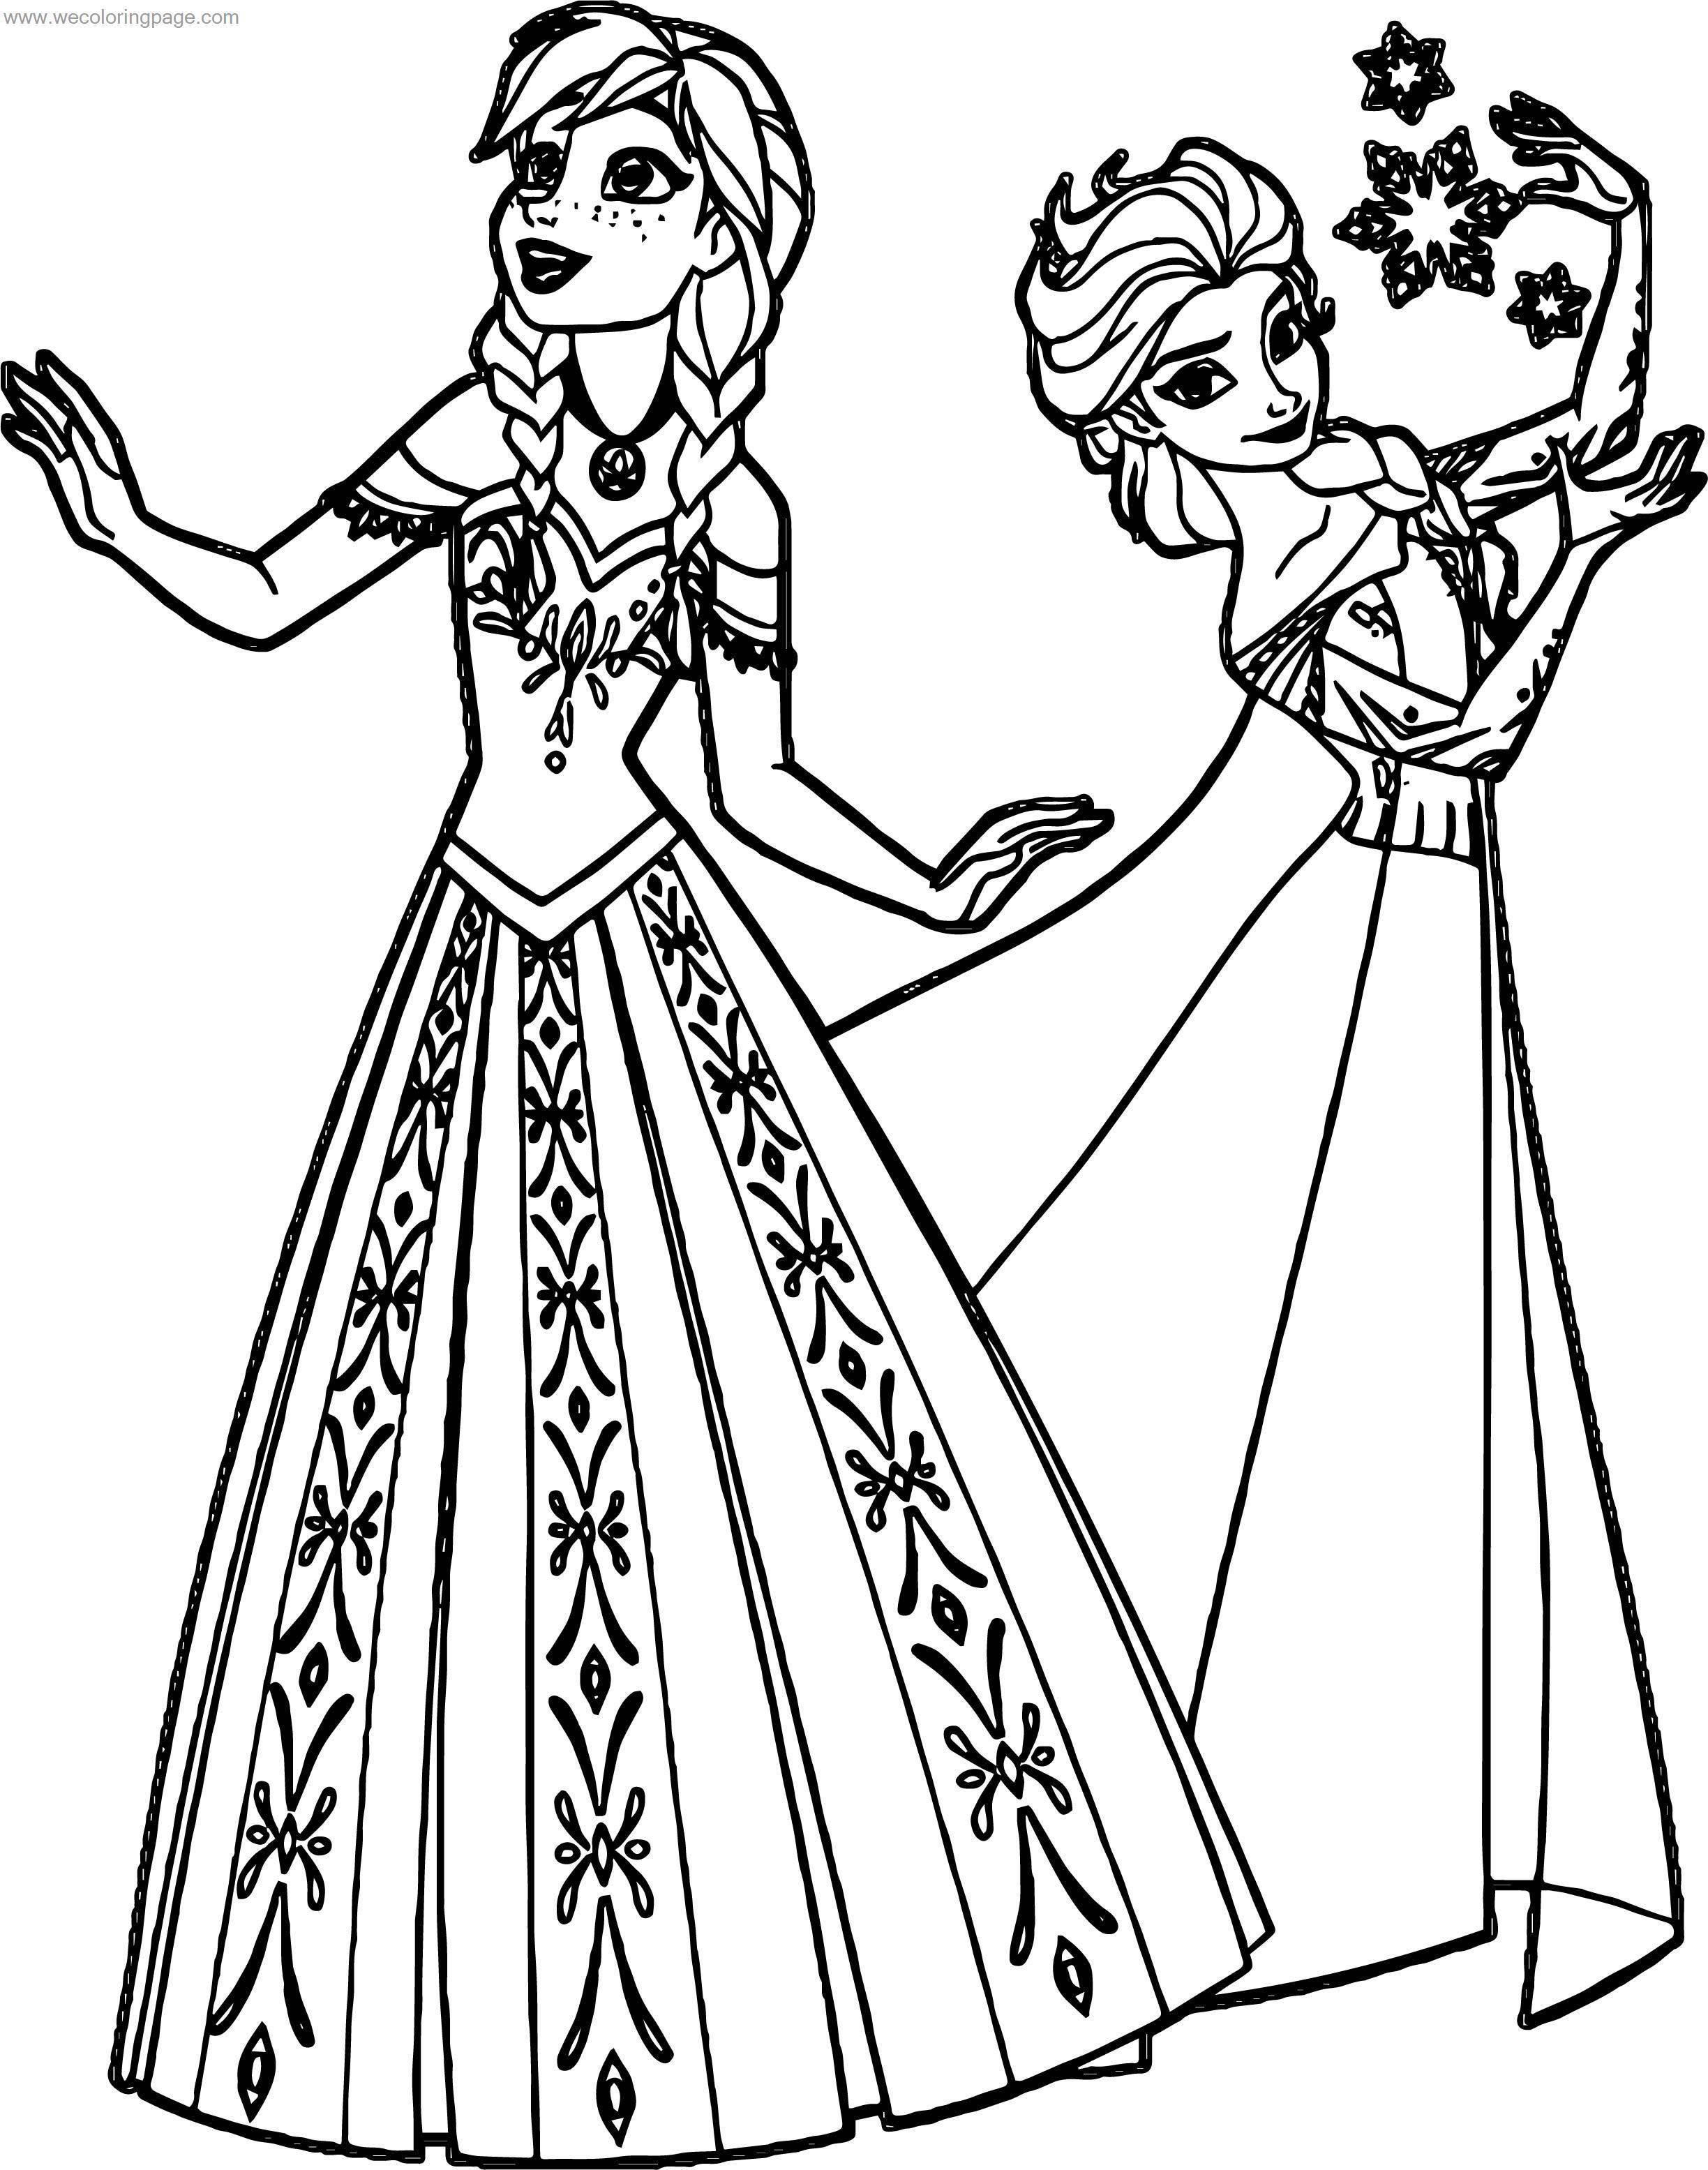 Frozen Anna Elsa Sisters Coloring Page